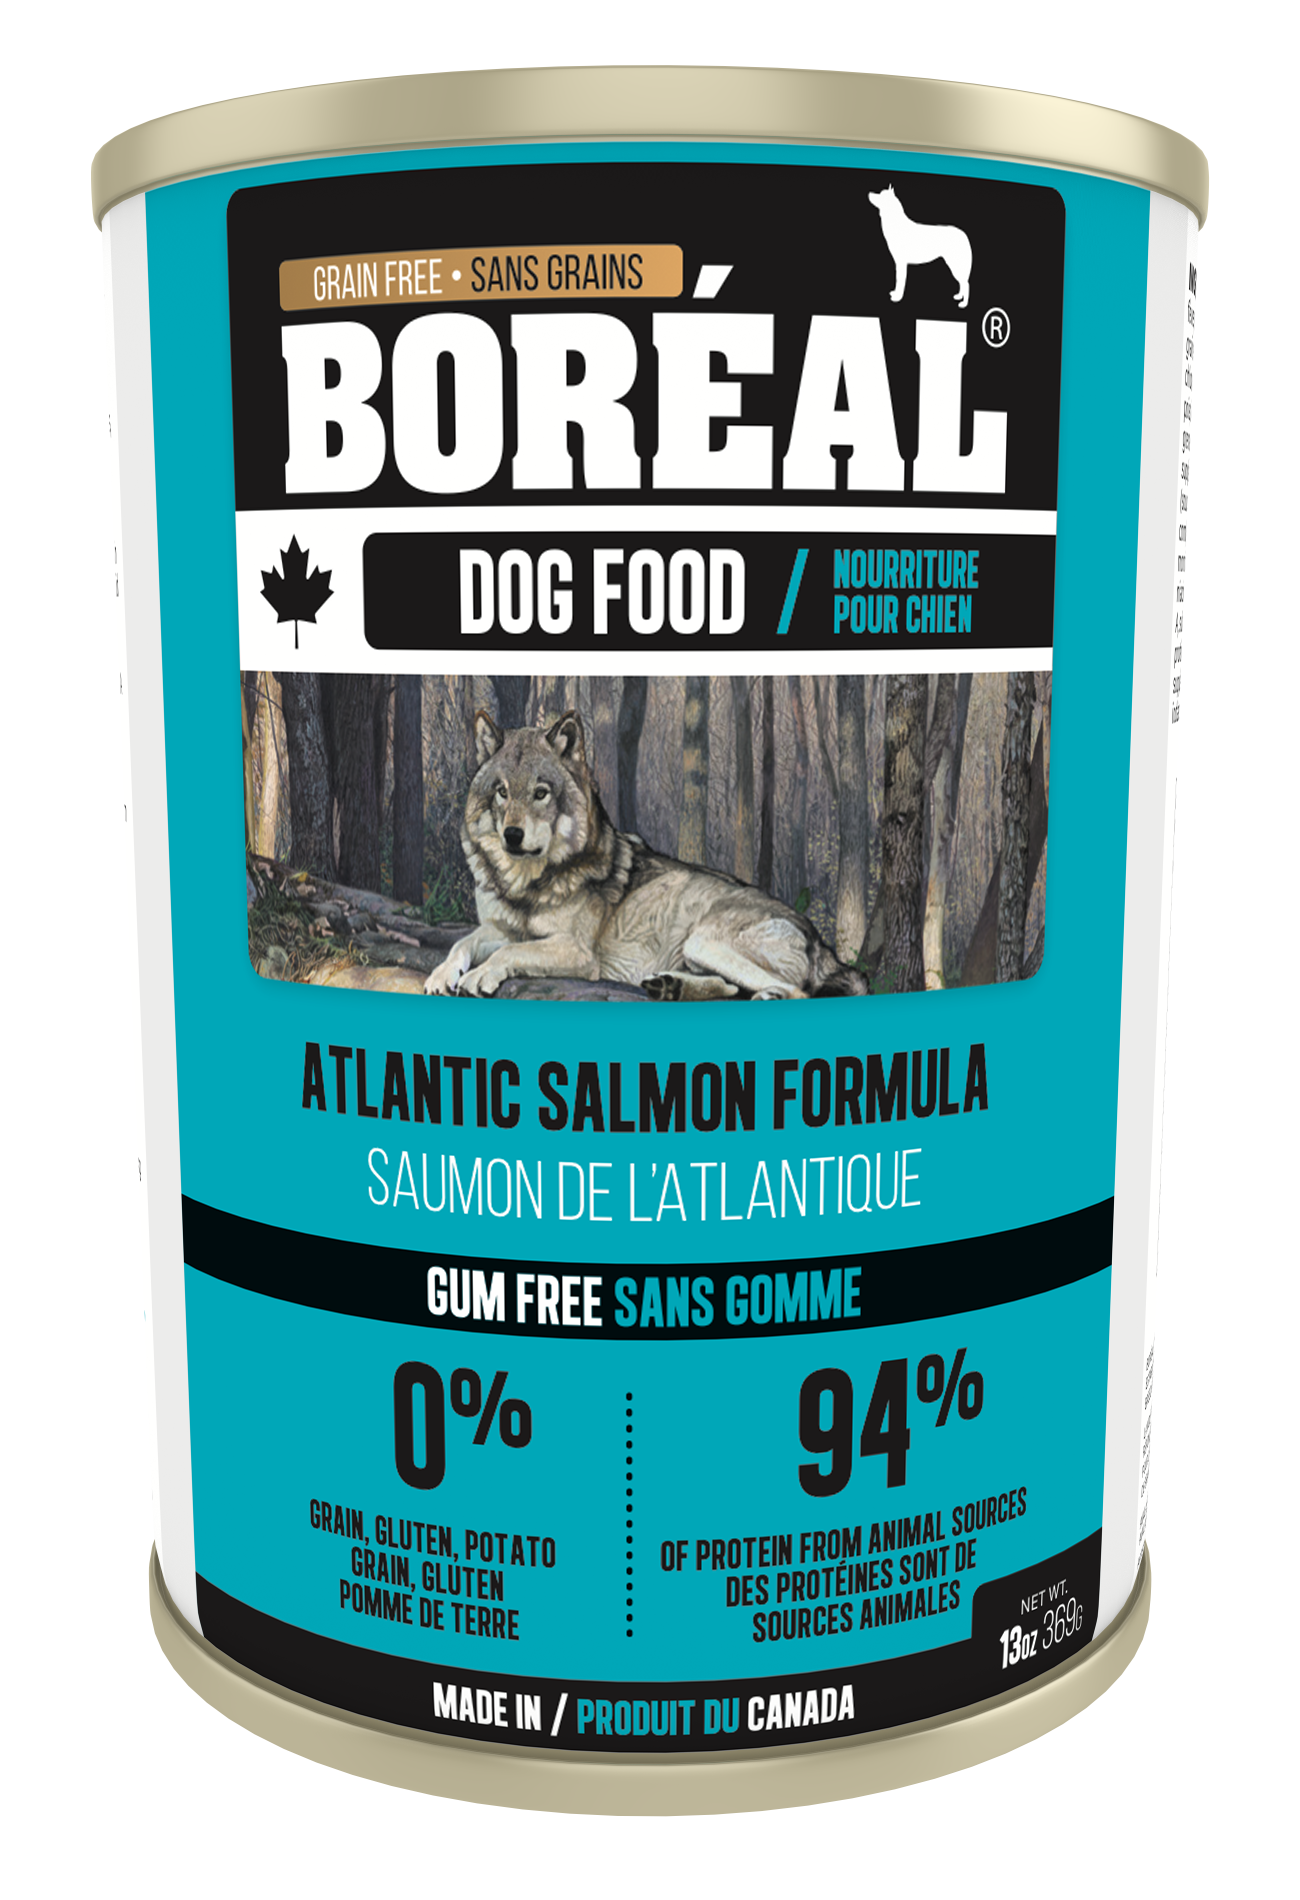 Boreal Grain-Free Canadian Atlantic Salmon Formula Canned Dog Food, 369g can Size: 369g can